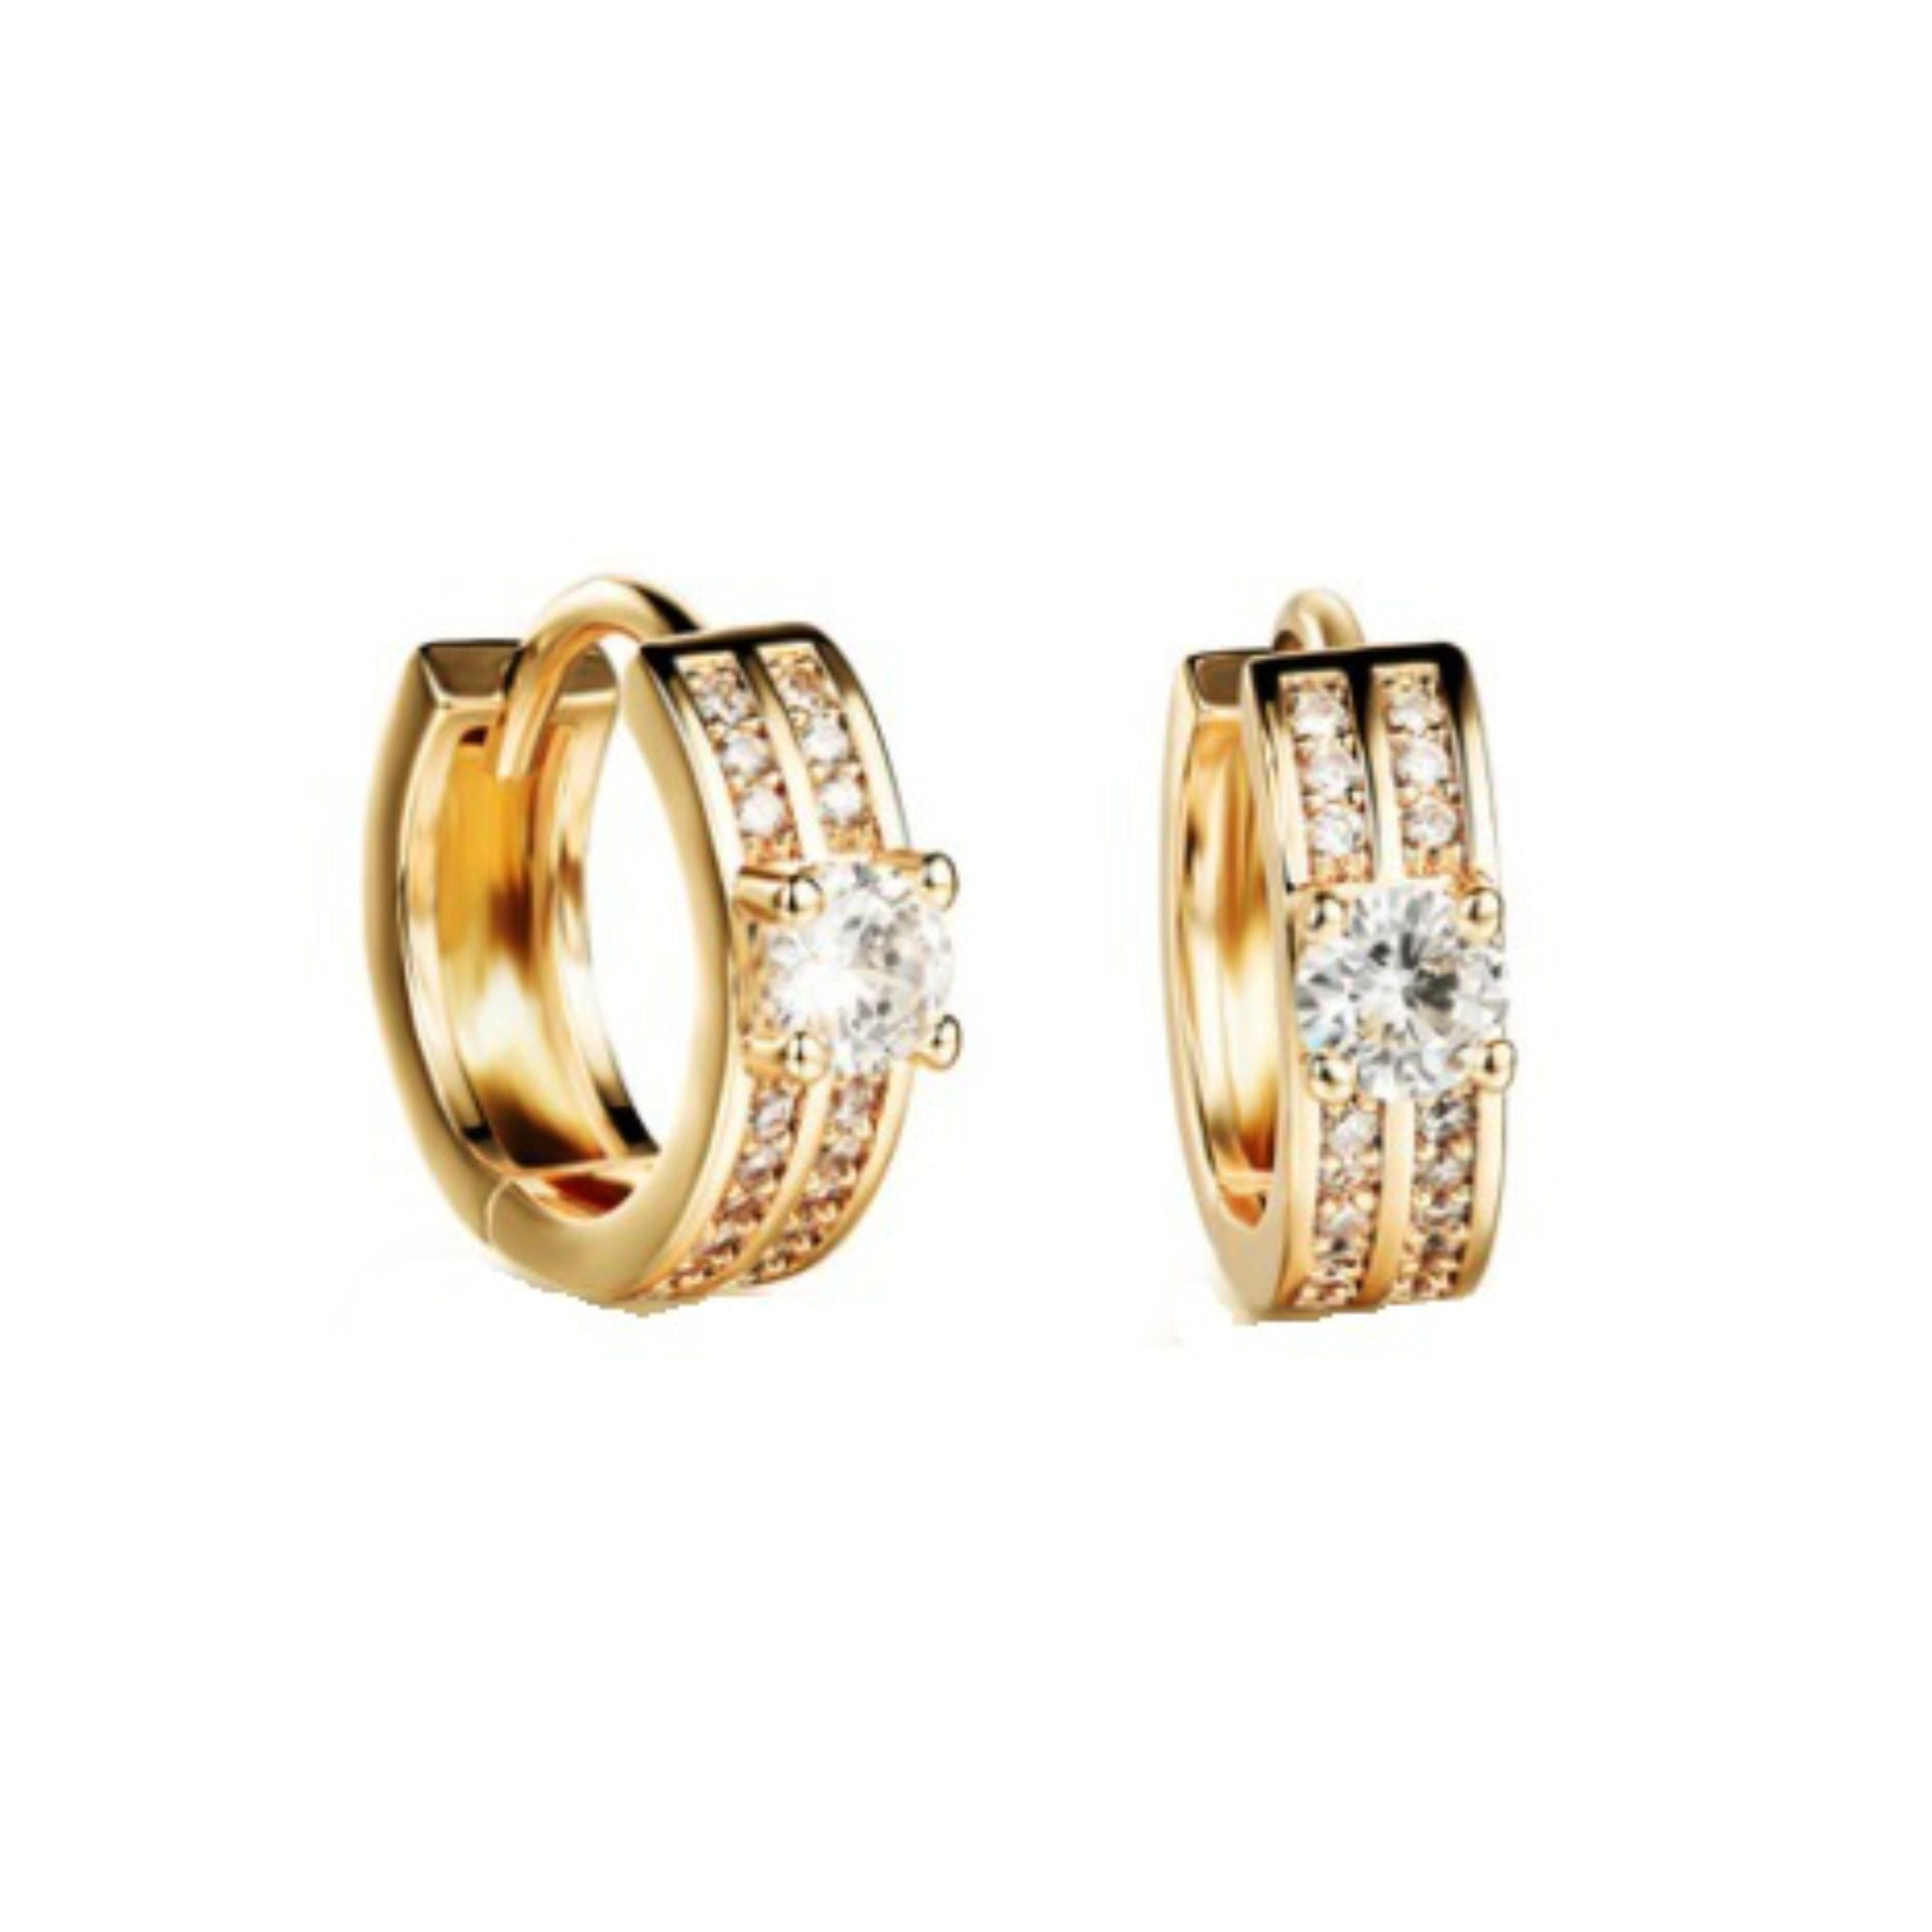 18K GP Cubic Zirconia Hoop Earrings